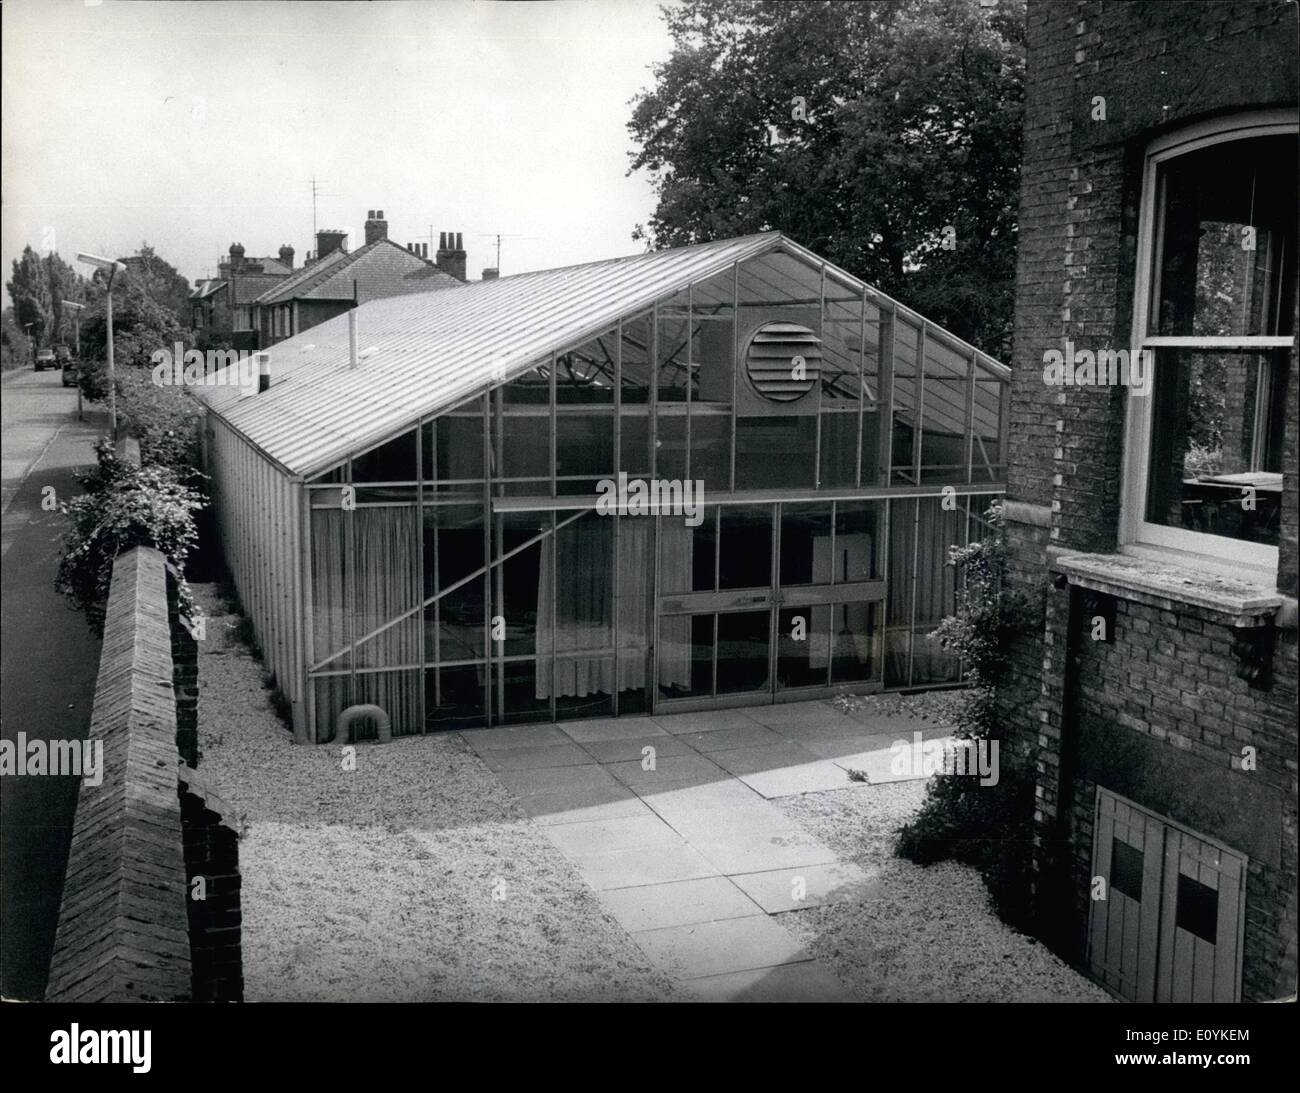 The glass house stock photos the glass house stock images alamy - Glass house show ...